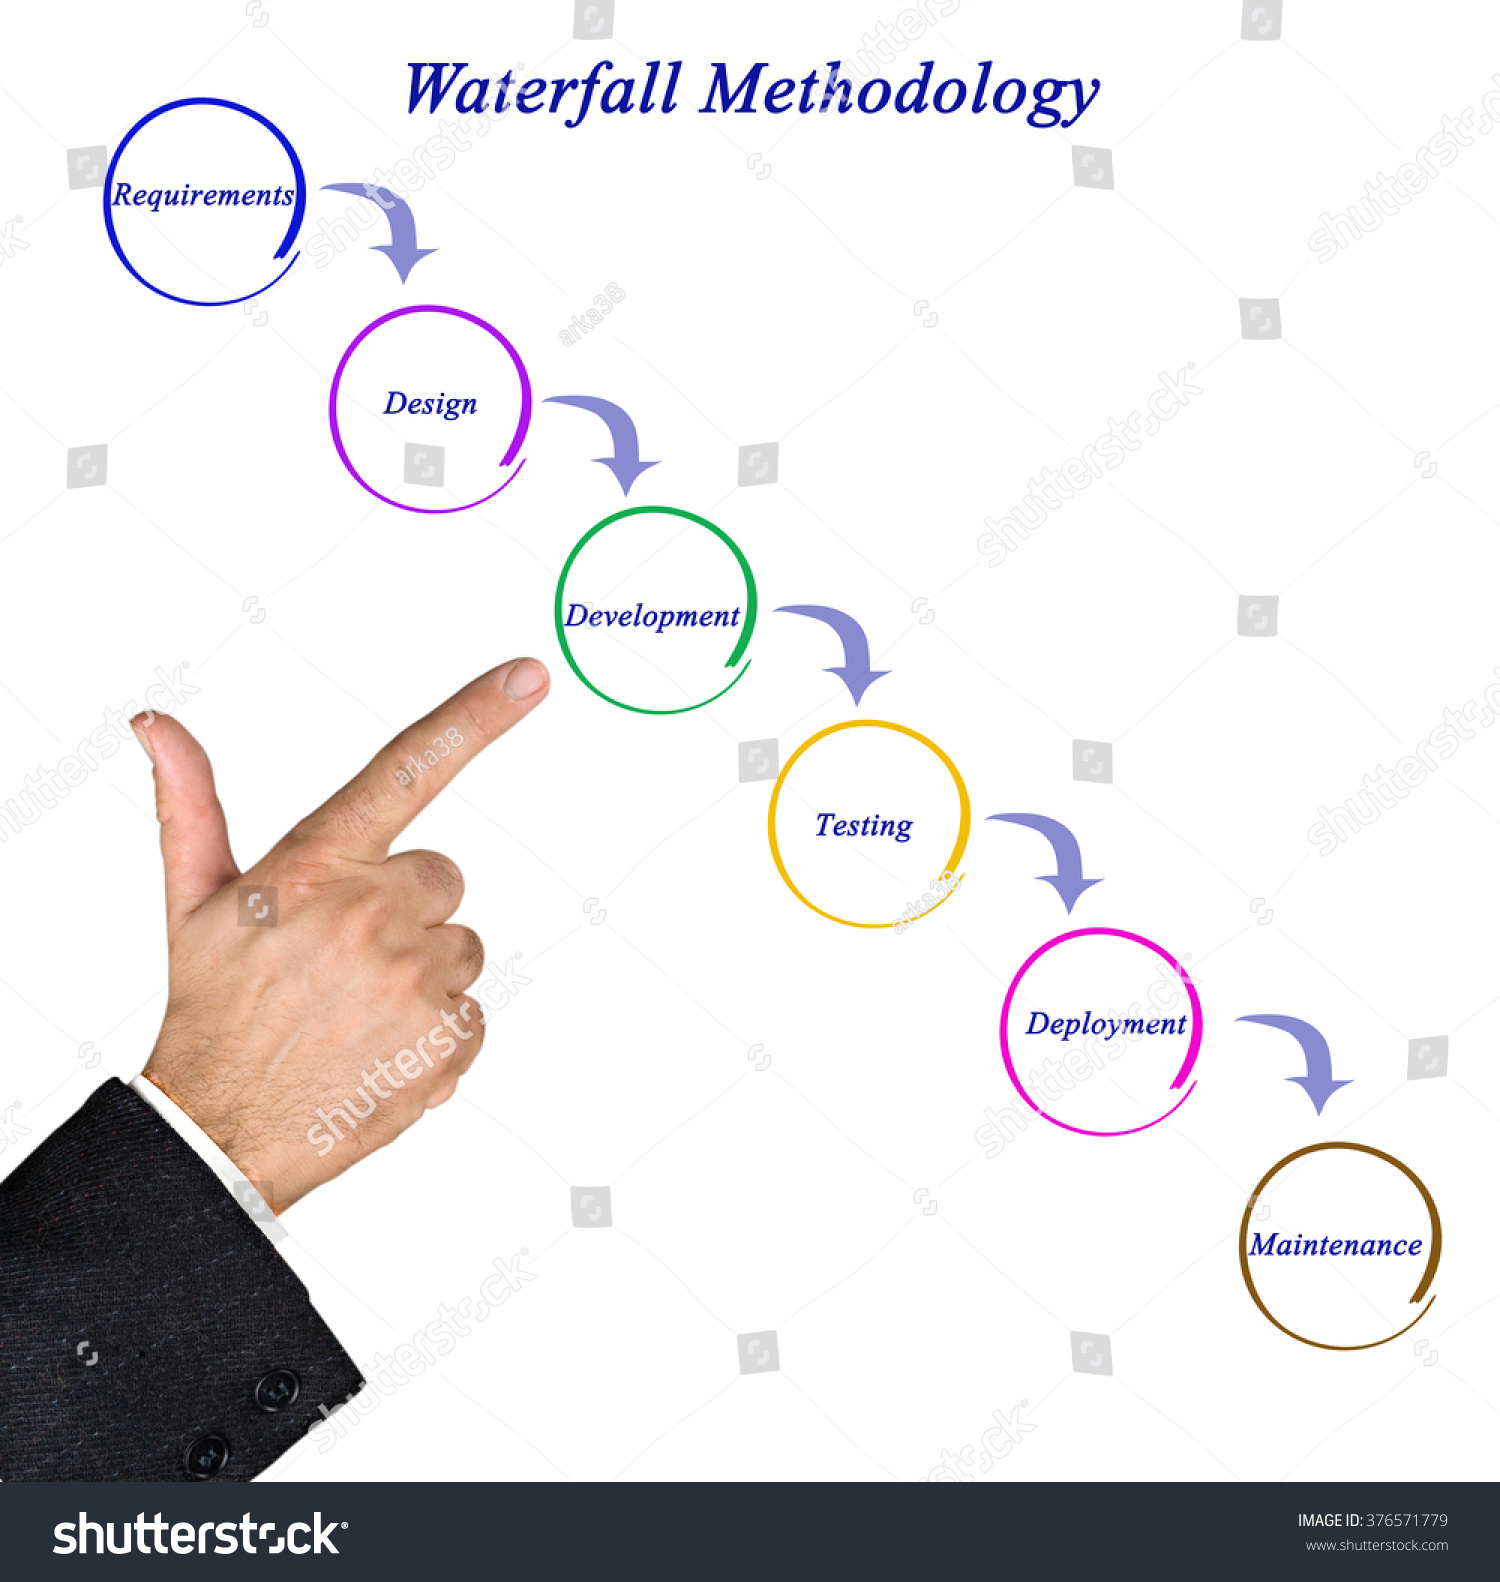 Diagram waterfall methodology stock photo 376571779 shutterstock diagram of waterfall methodology pooptronica Image collections